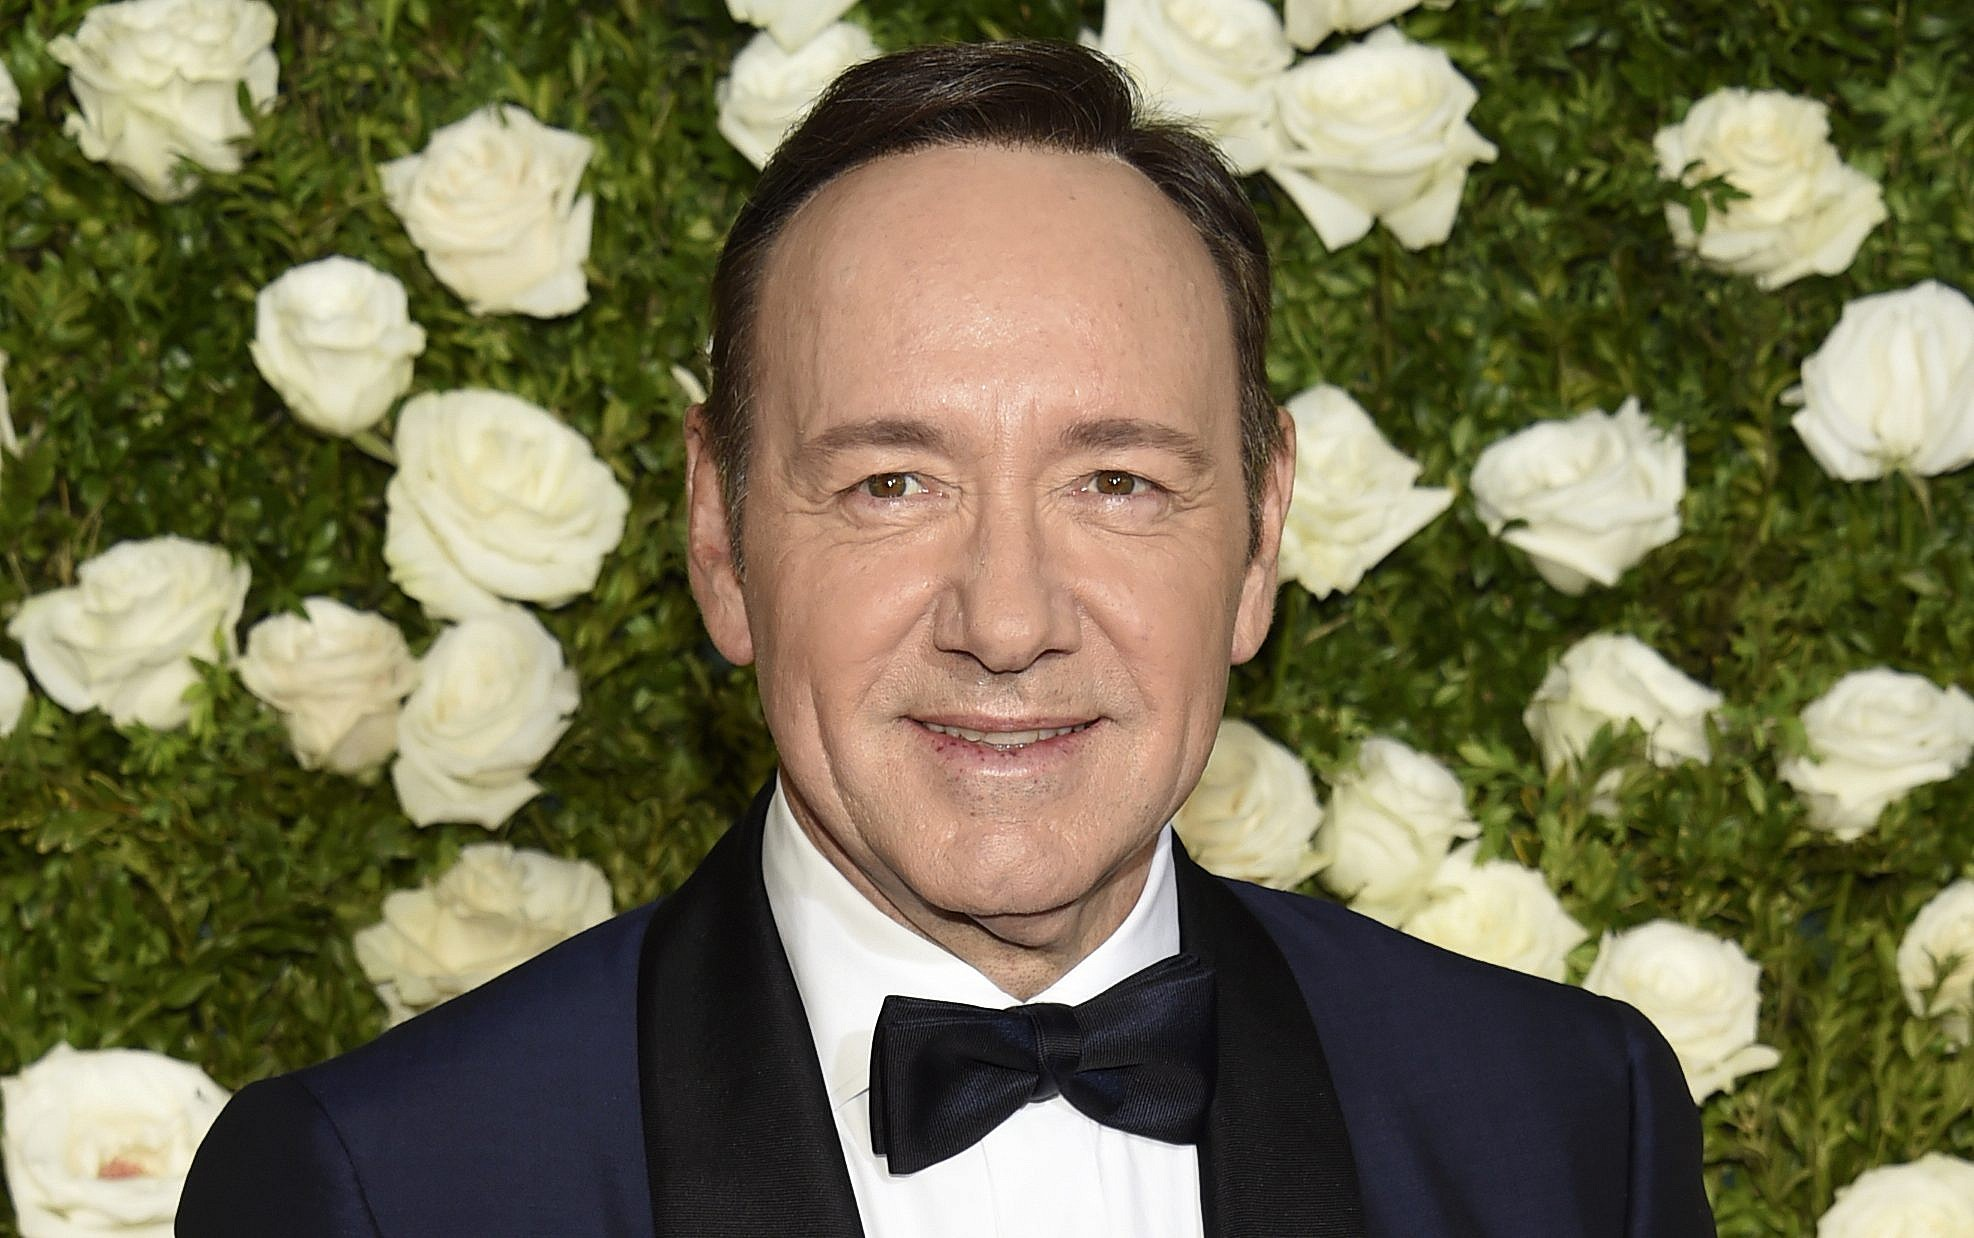 House of Cards suspended because of new allegations of Kevin Spacey